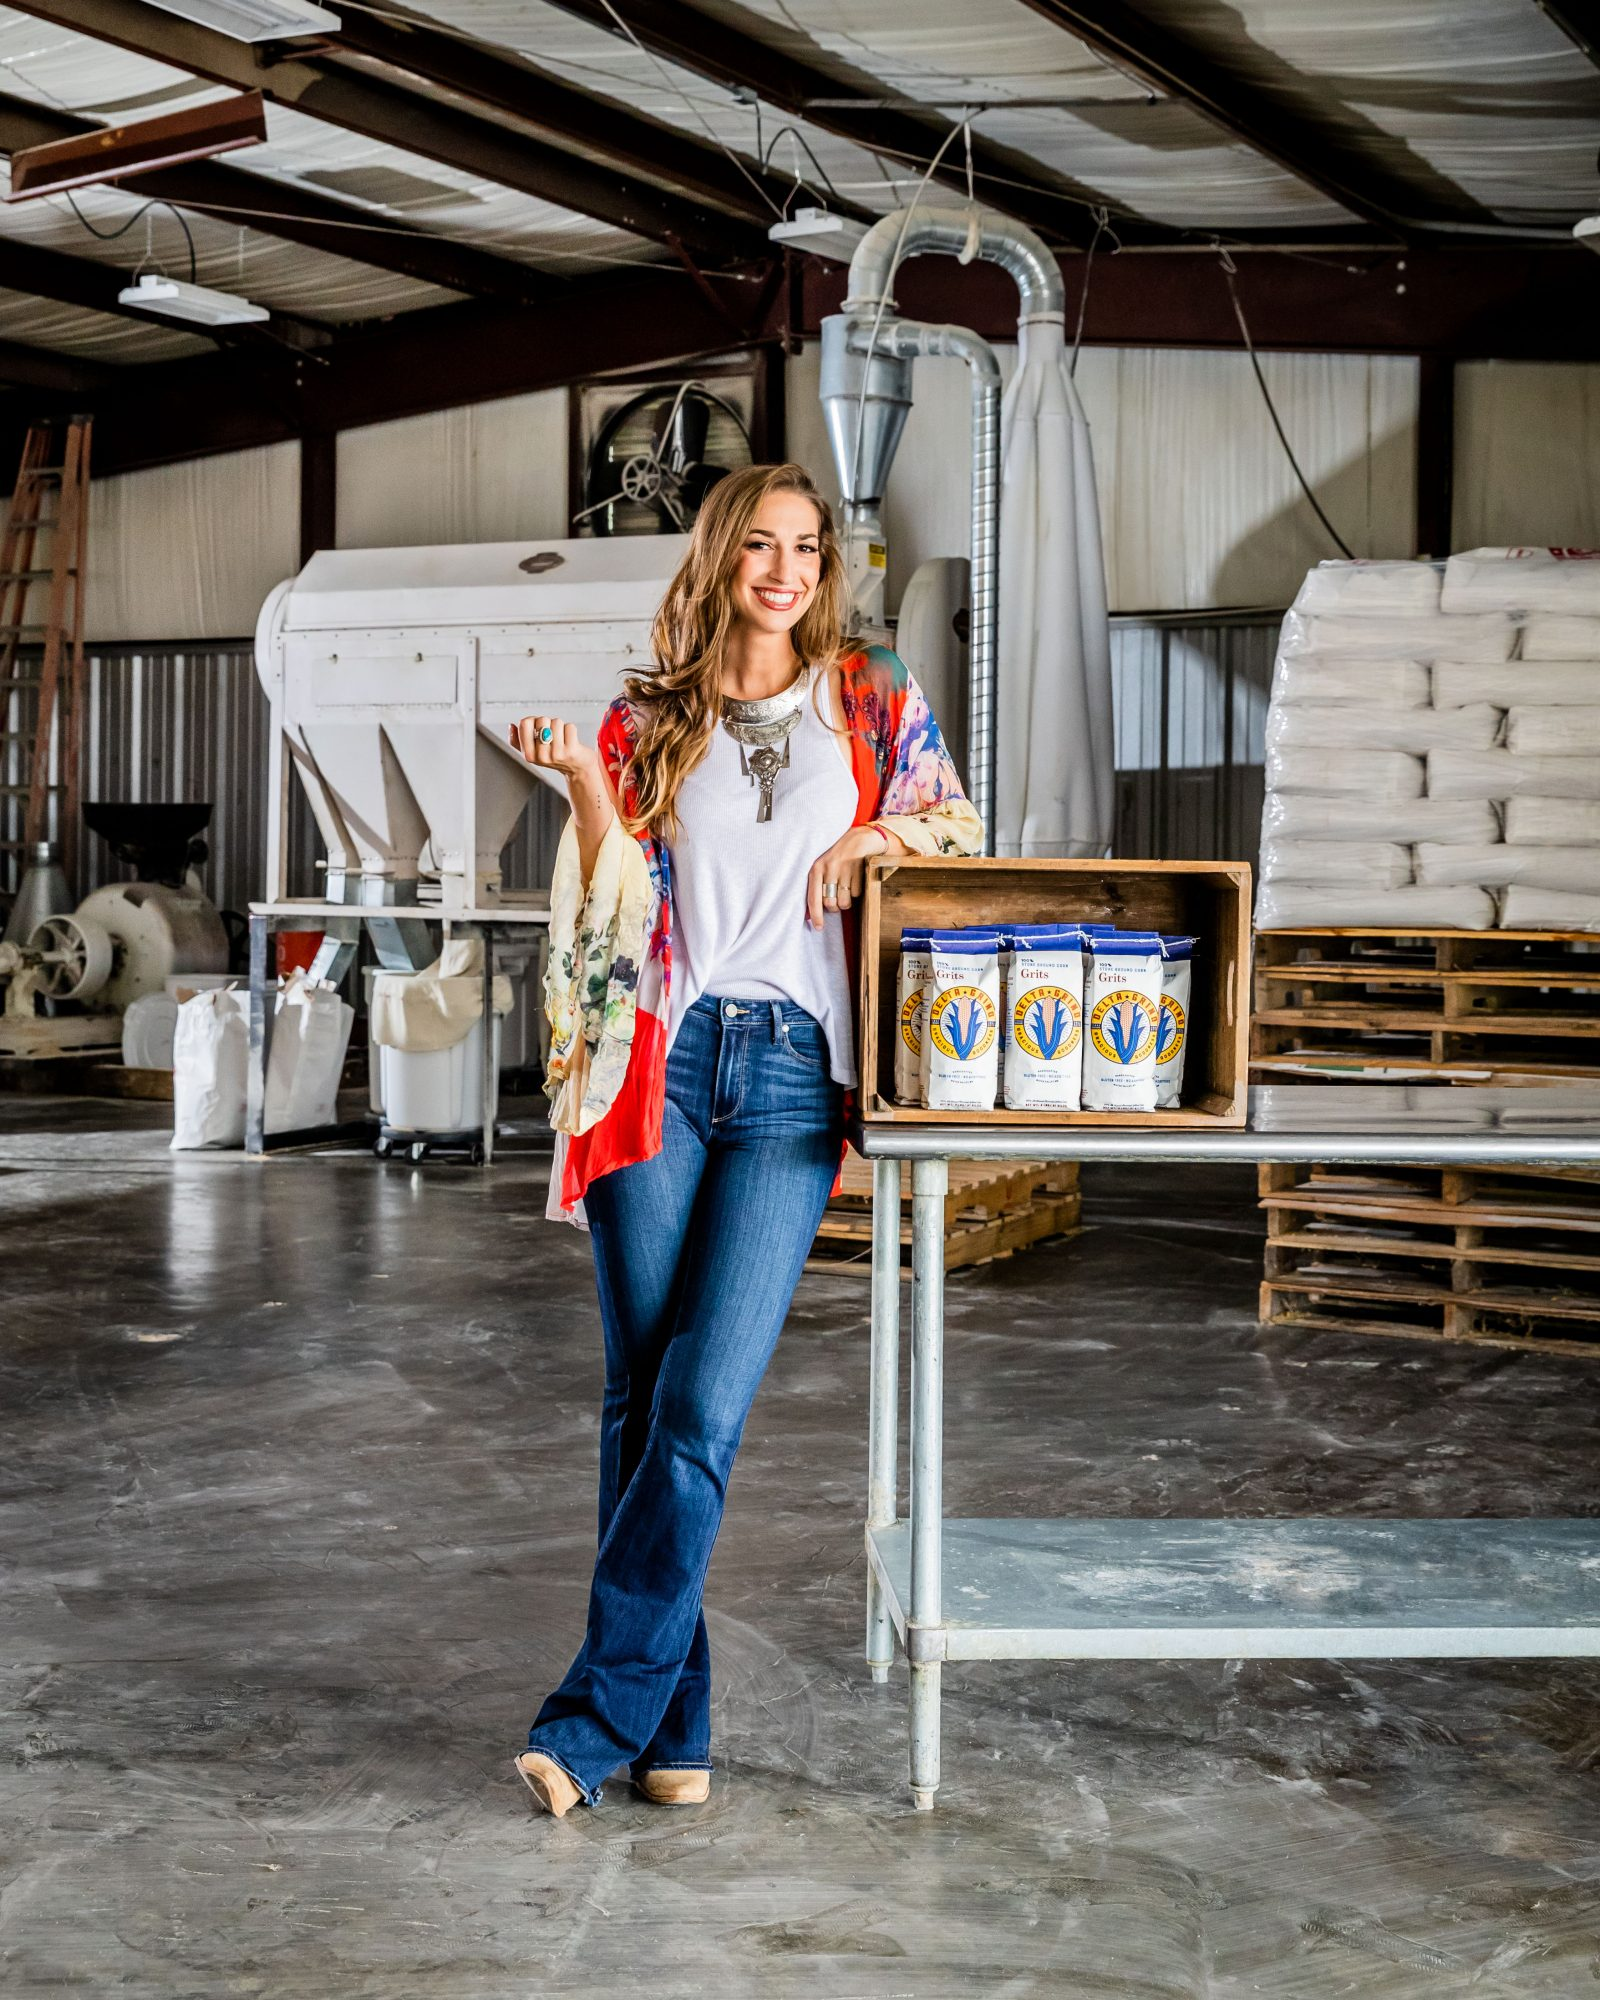 Julia Tatum of Delta Grind in Oxford, MS